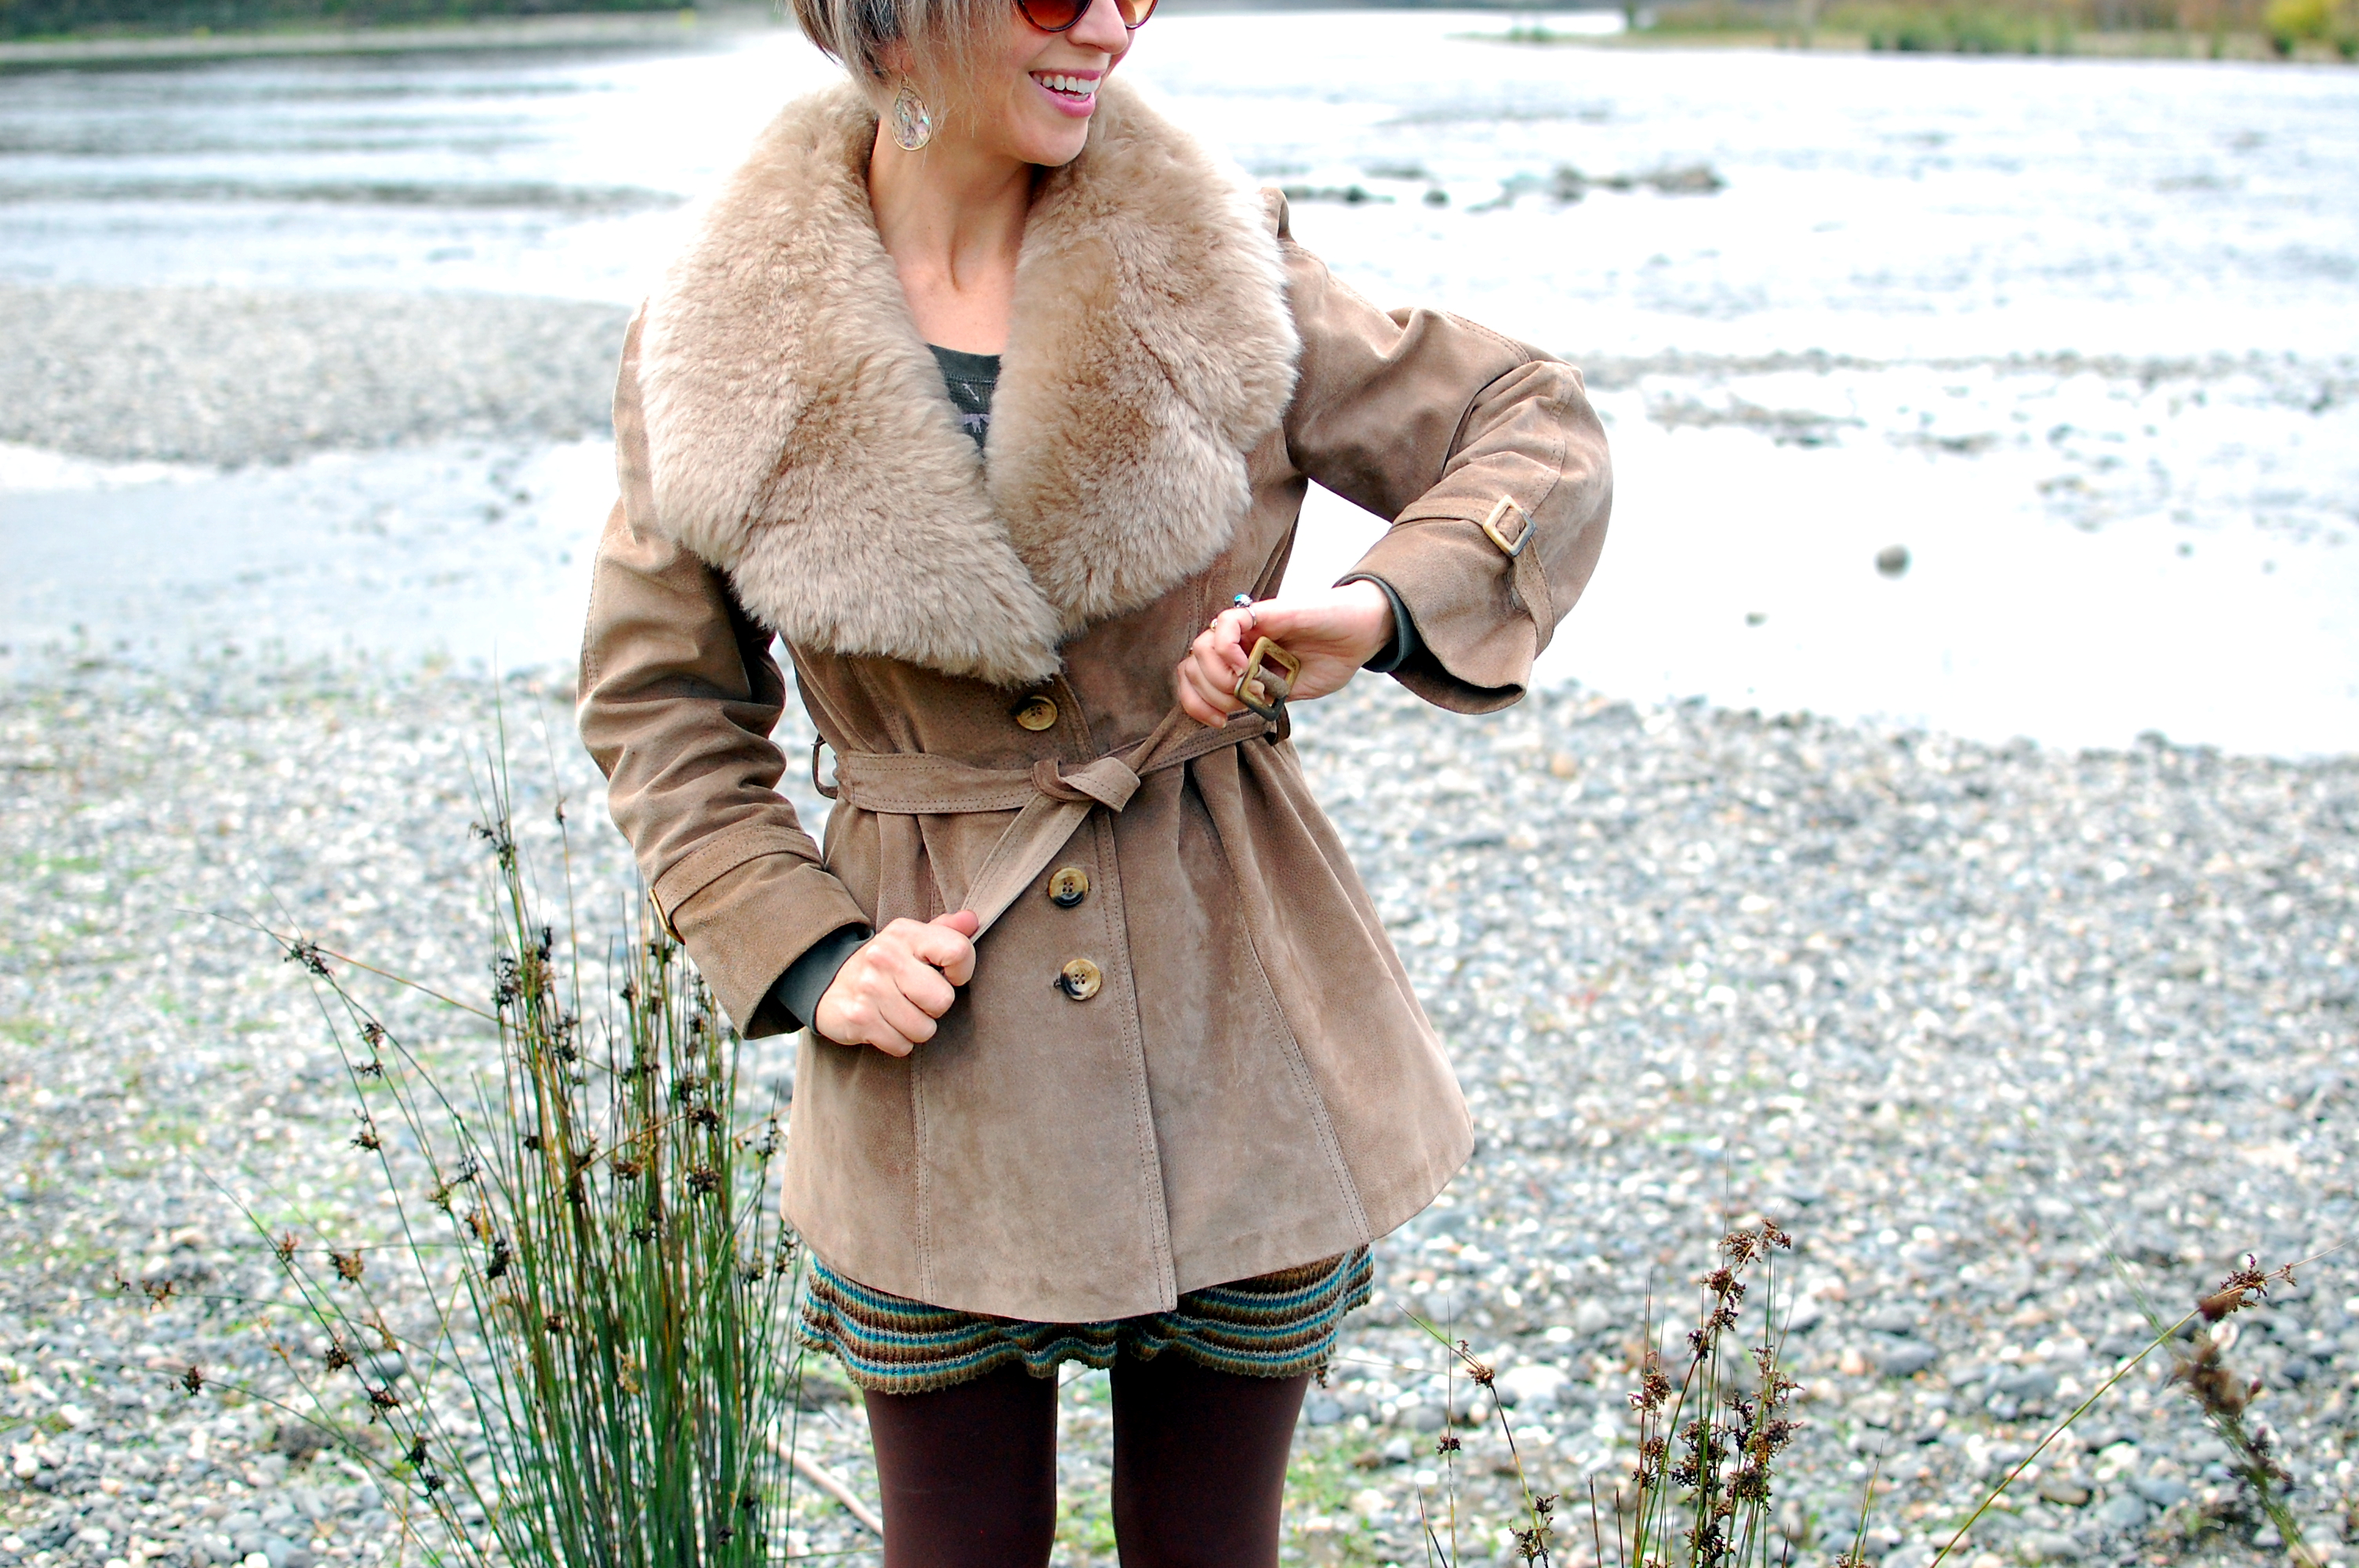 vintage suede jacket faux fur collar ootd outfit whatiwore2day